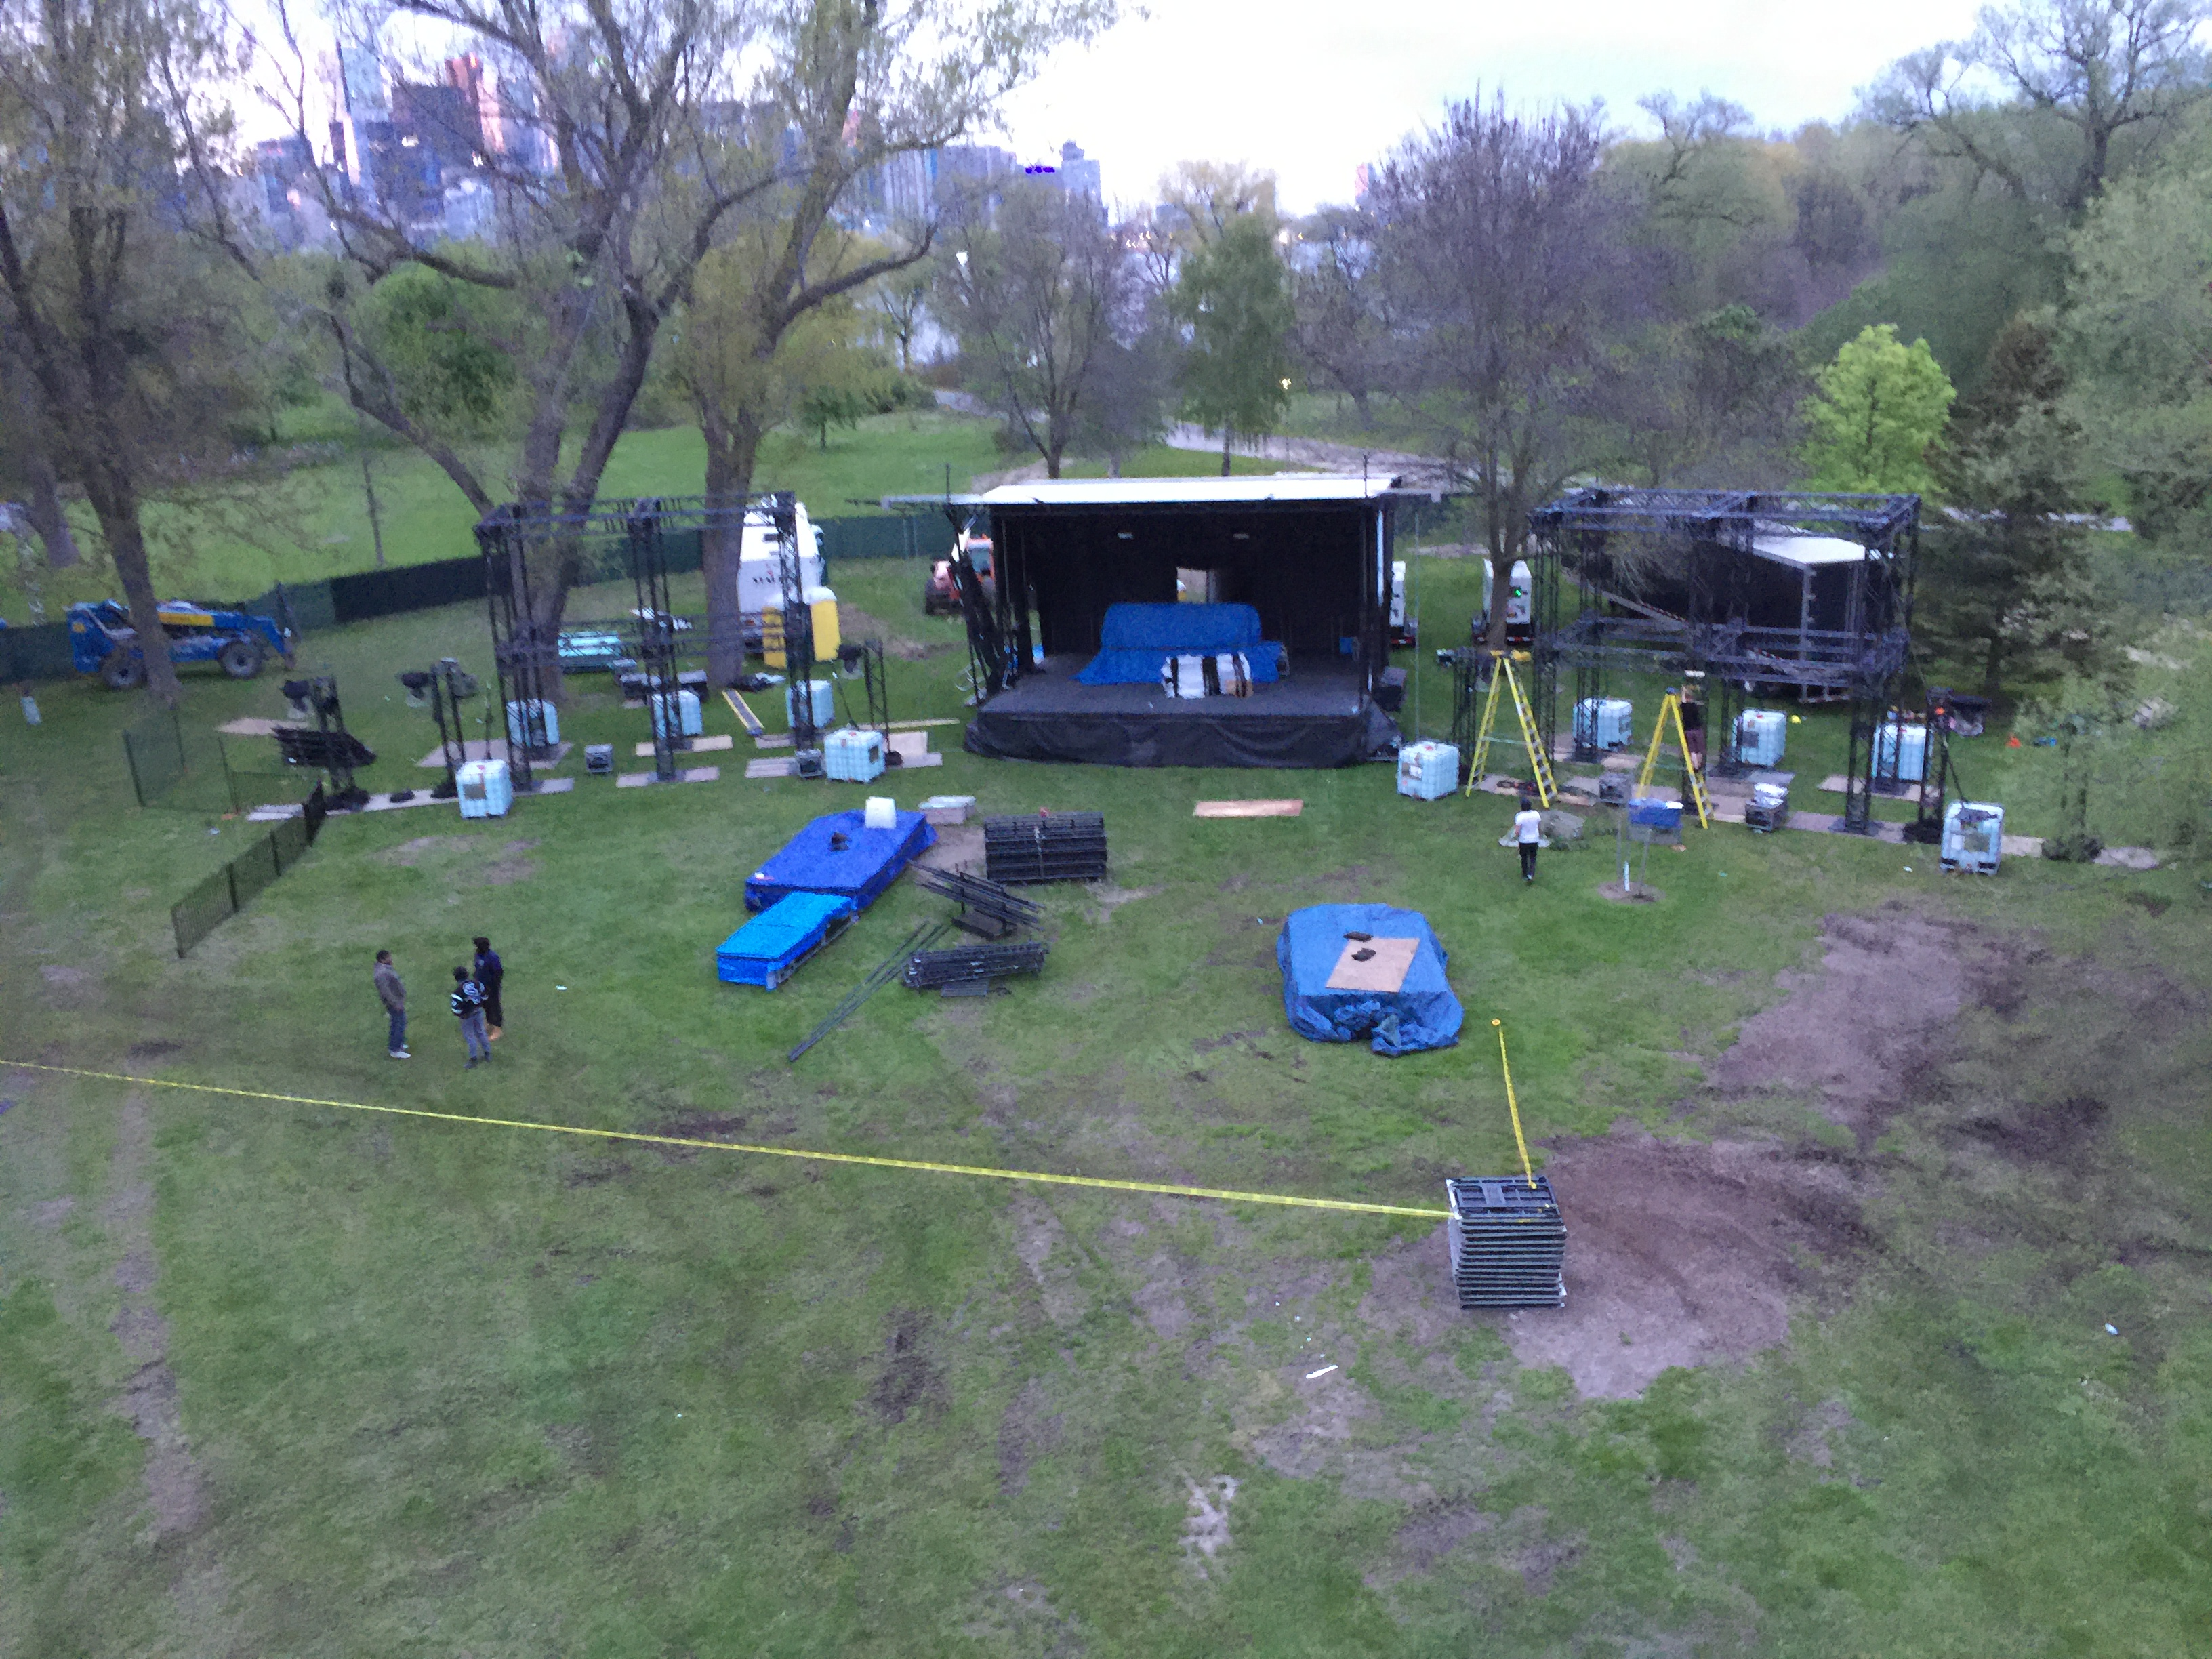 Electric Island in its very early stages of set-up